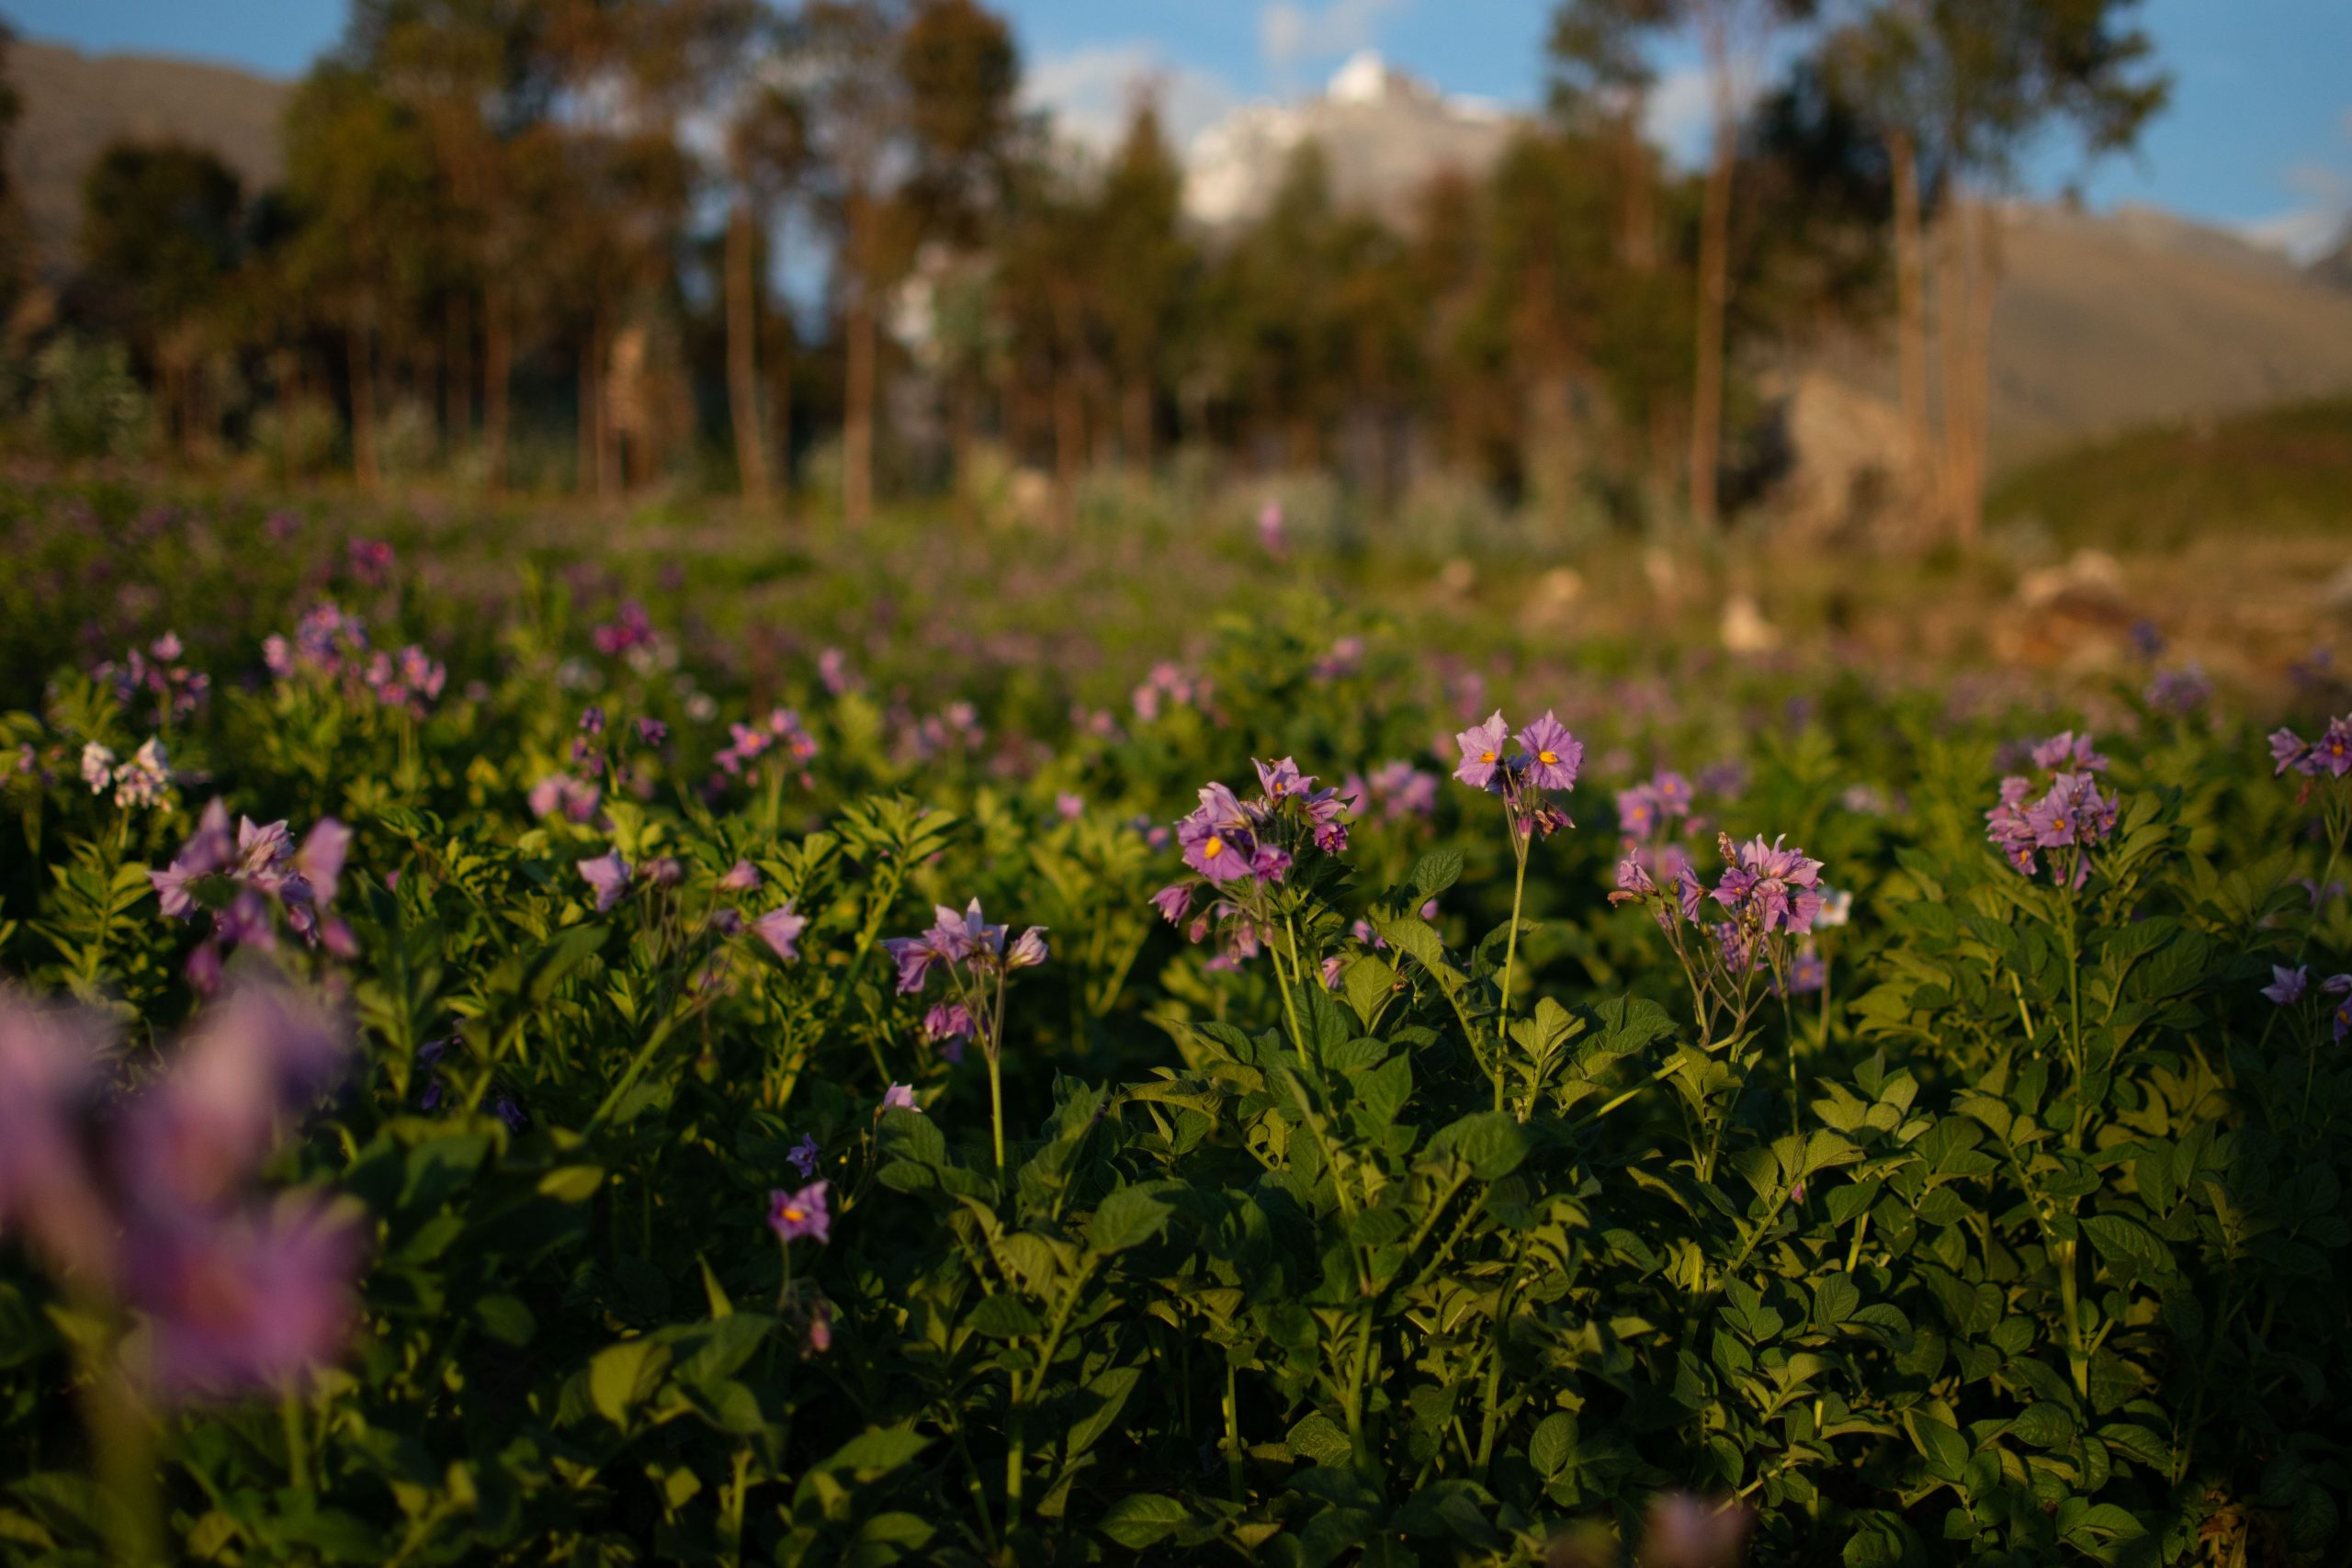 Flowering potato plants in the Peruvian Andes